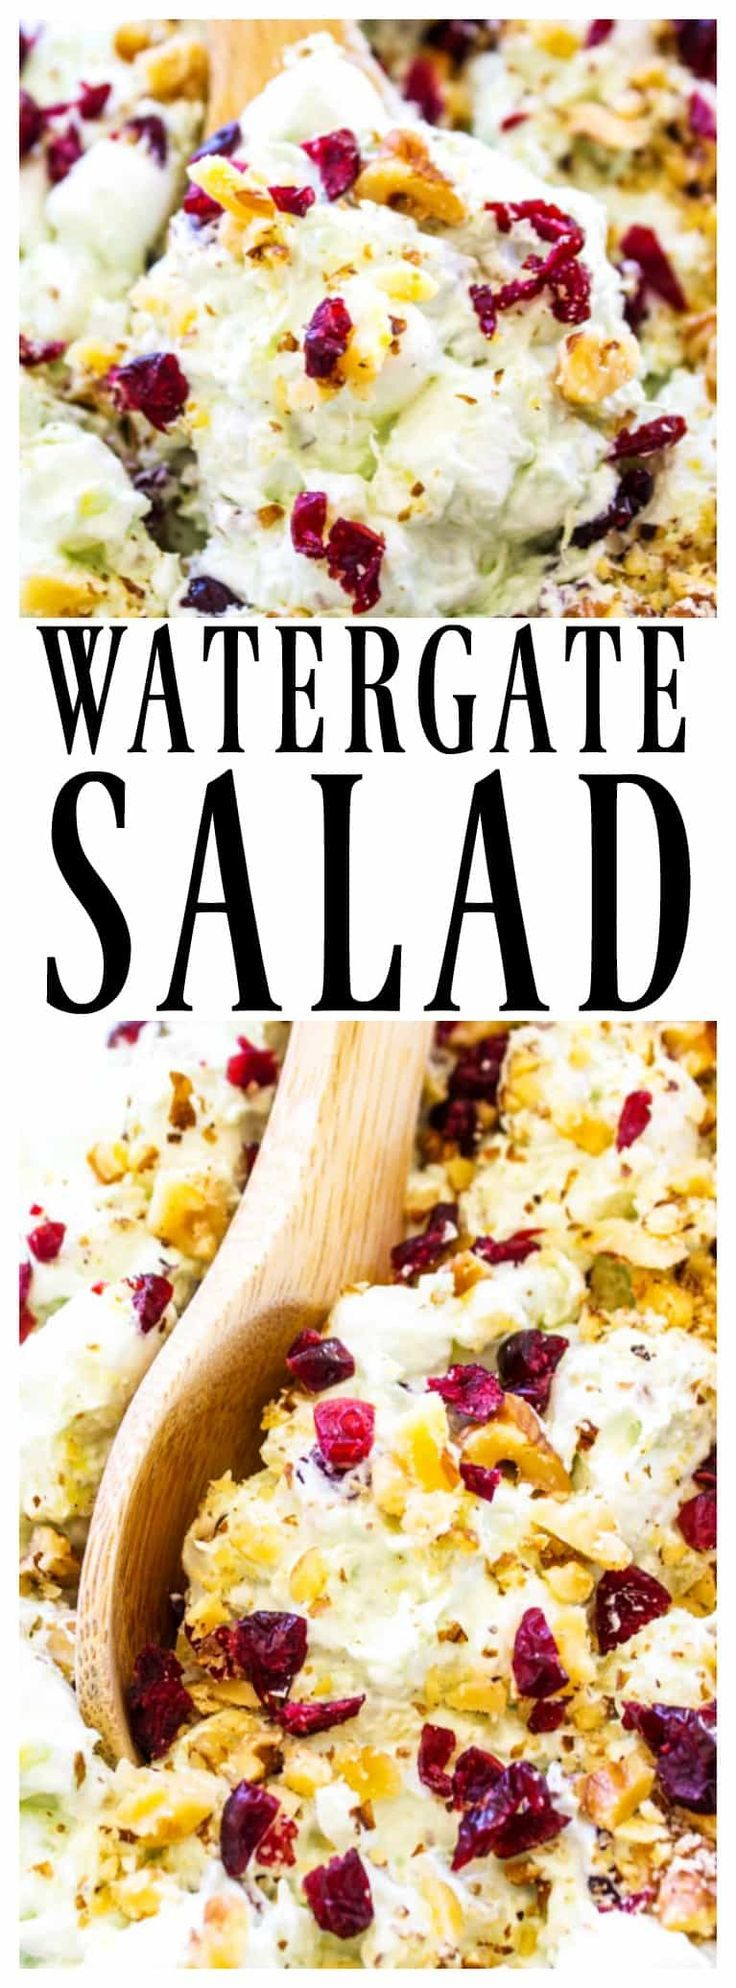 WATERGATE SALAD - A classic & traditional holiday side dish that everyone loves. Made with Cool Whip, marshmallows, pistachio pudding and pineapple, it's deliciously easy. #christmas #recipes #holidays #sidedish #watergatesalad #salad #recipeideas #holidayrecipes